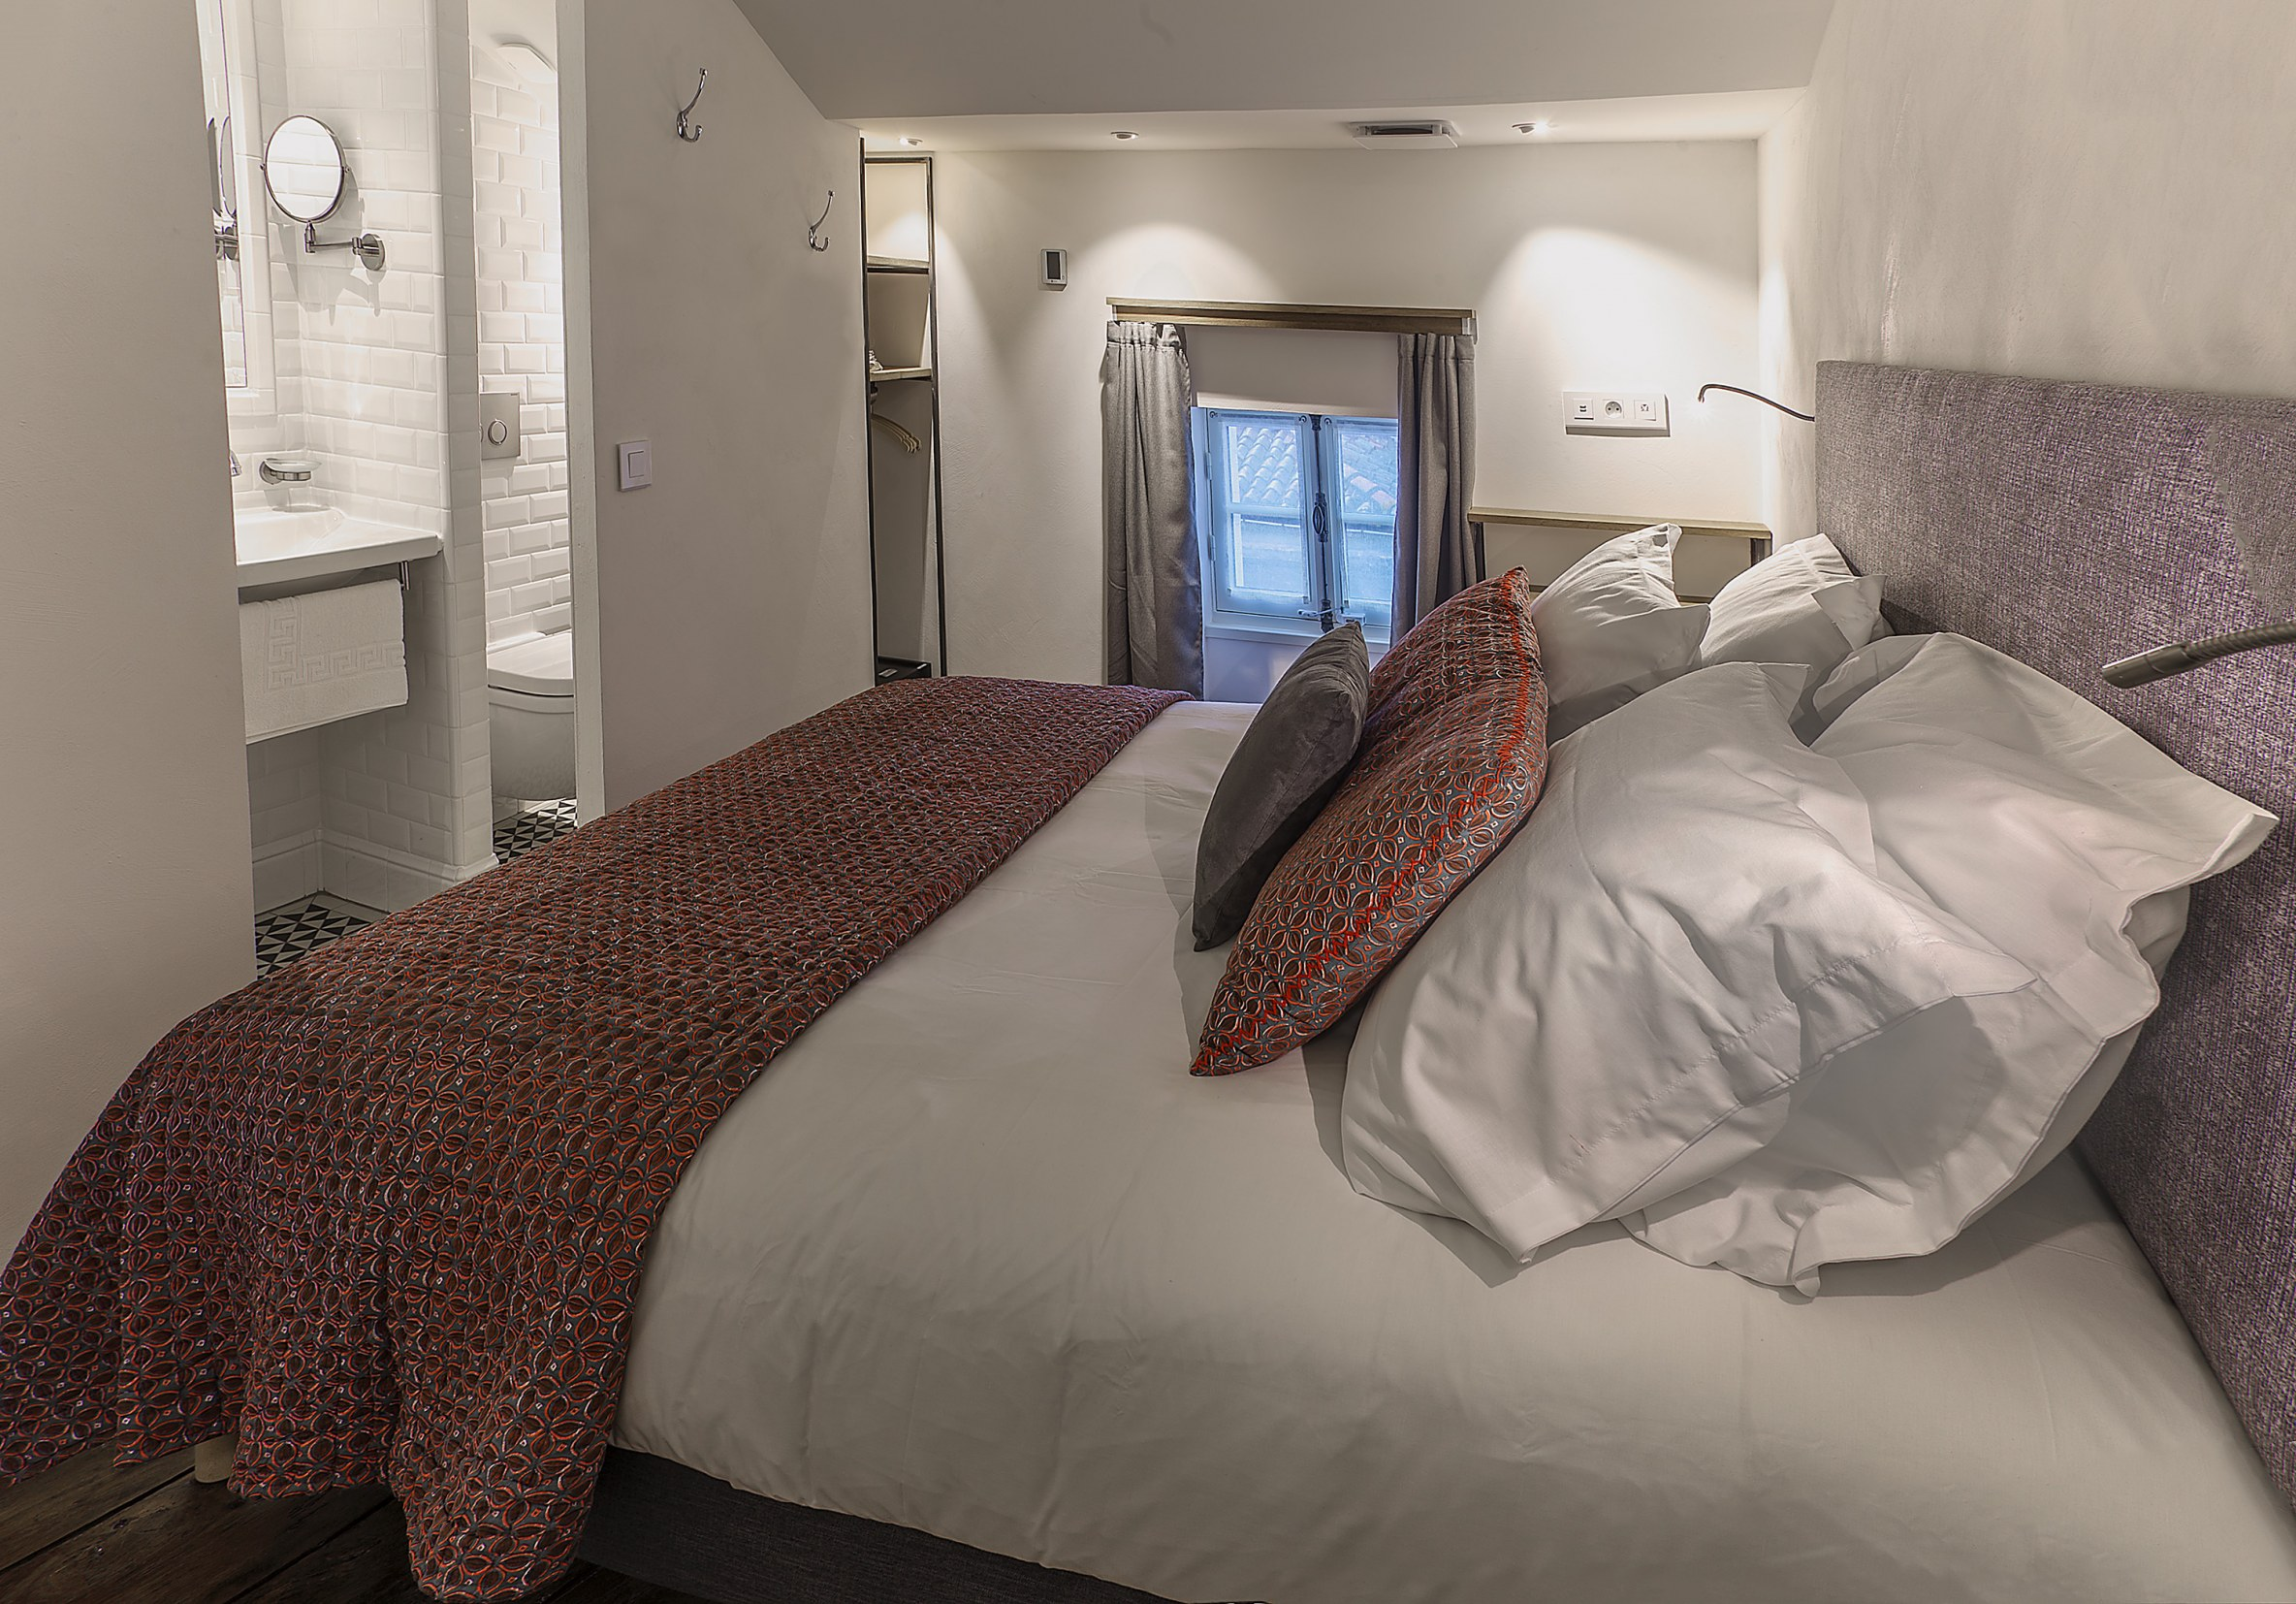 appart-hotel-angouleme-duplex-cote-cour-lit-queen-sdb